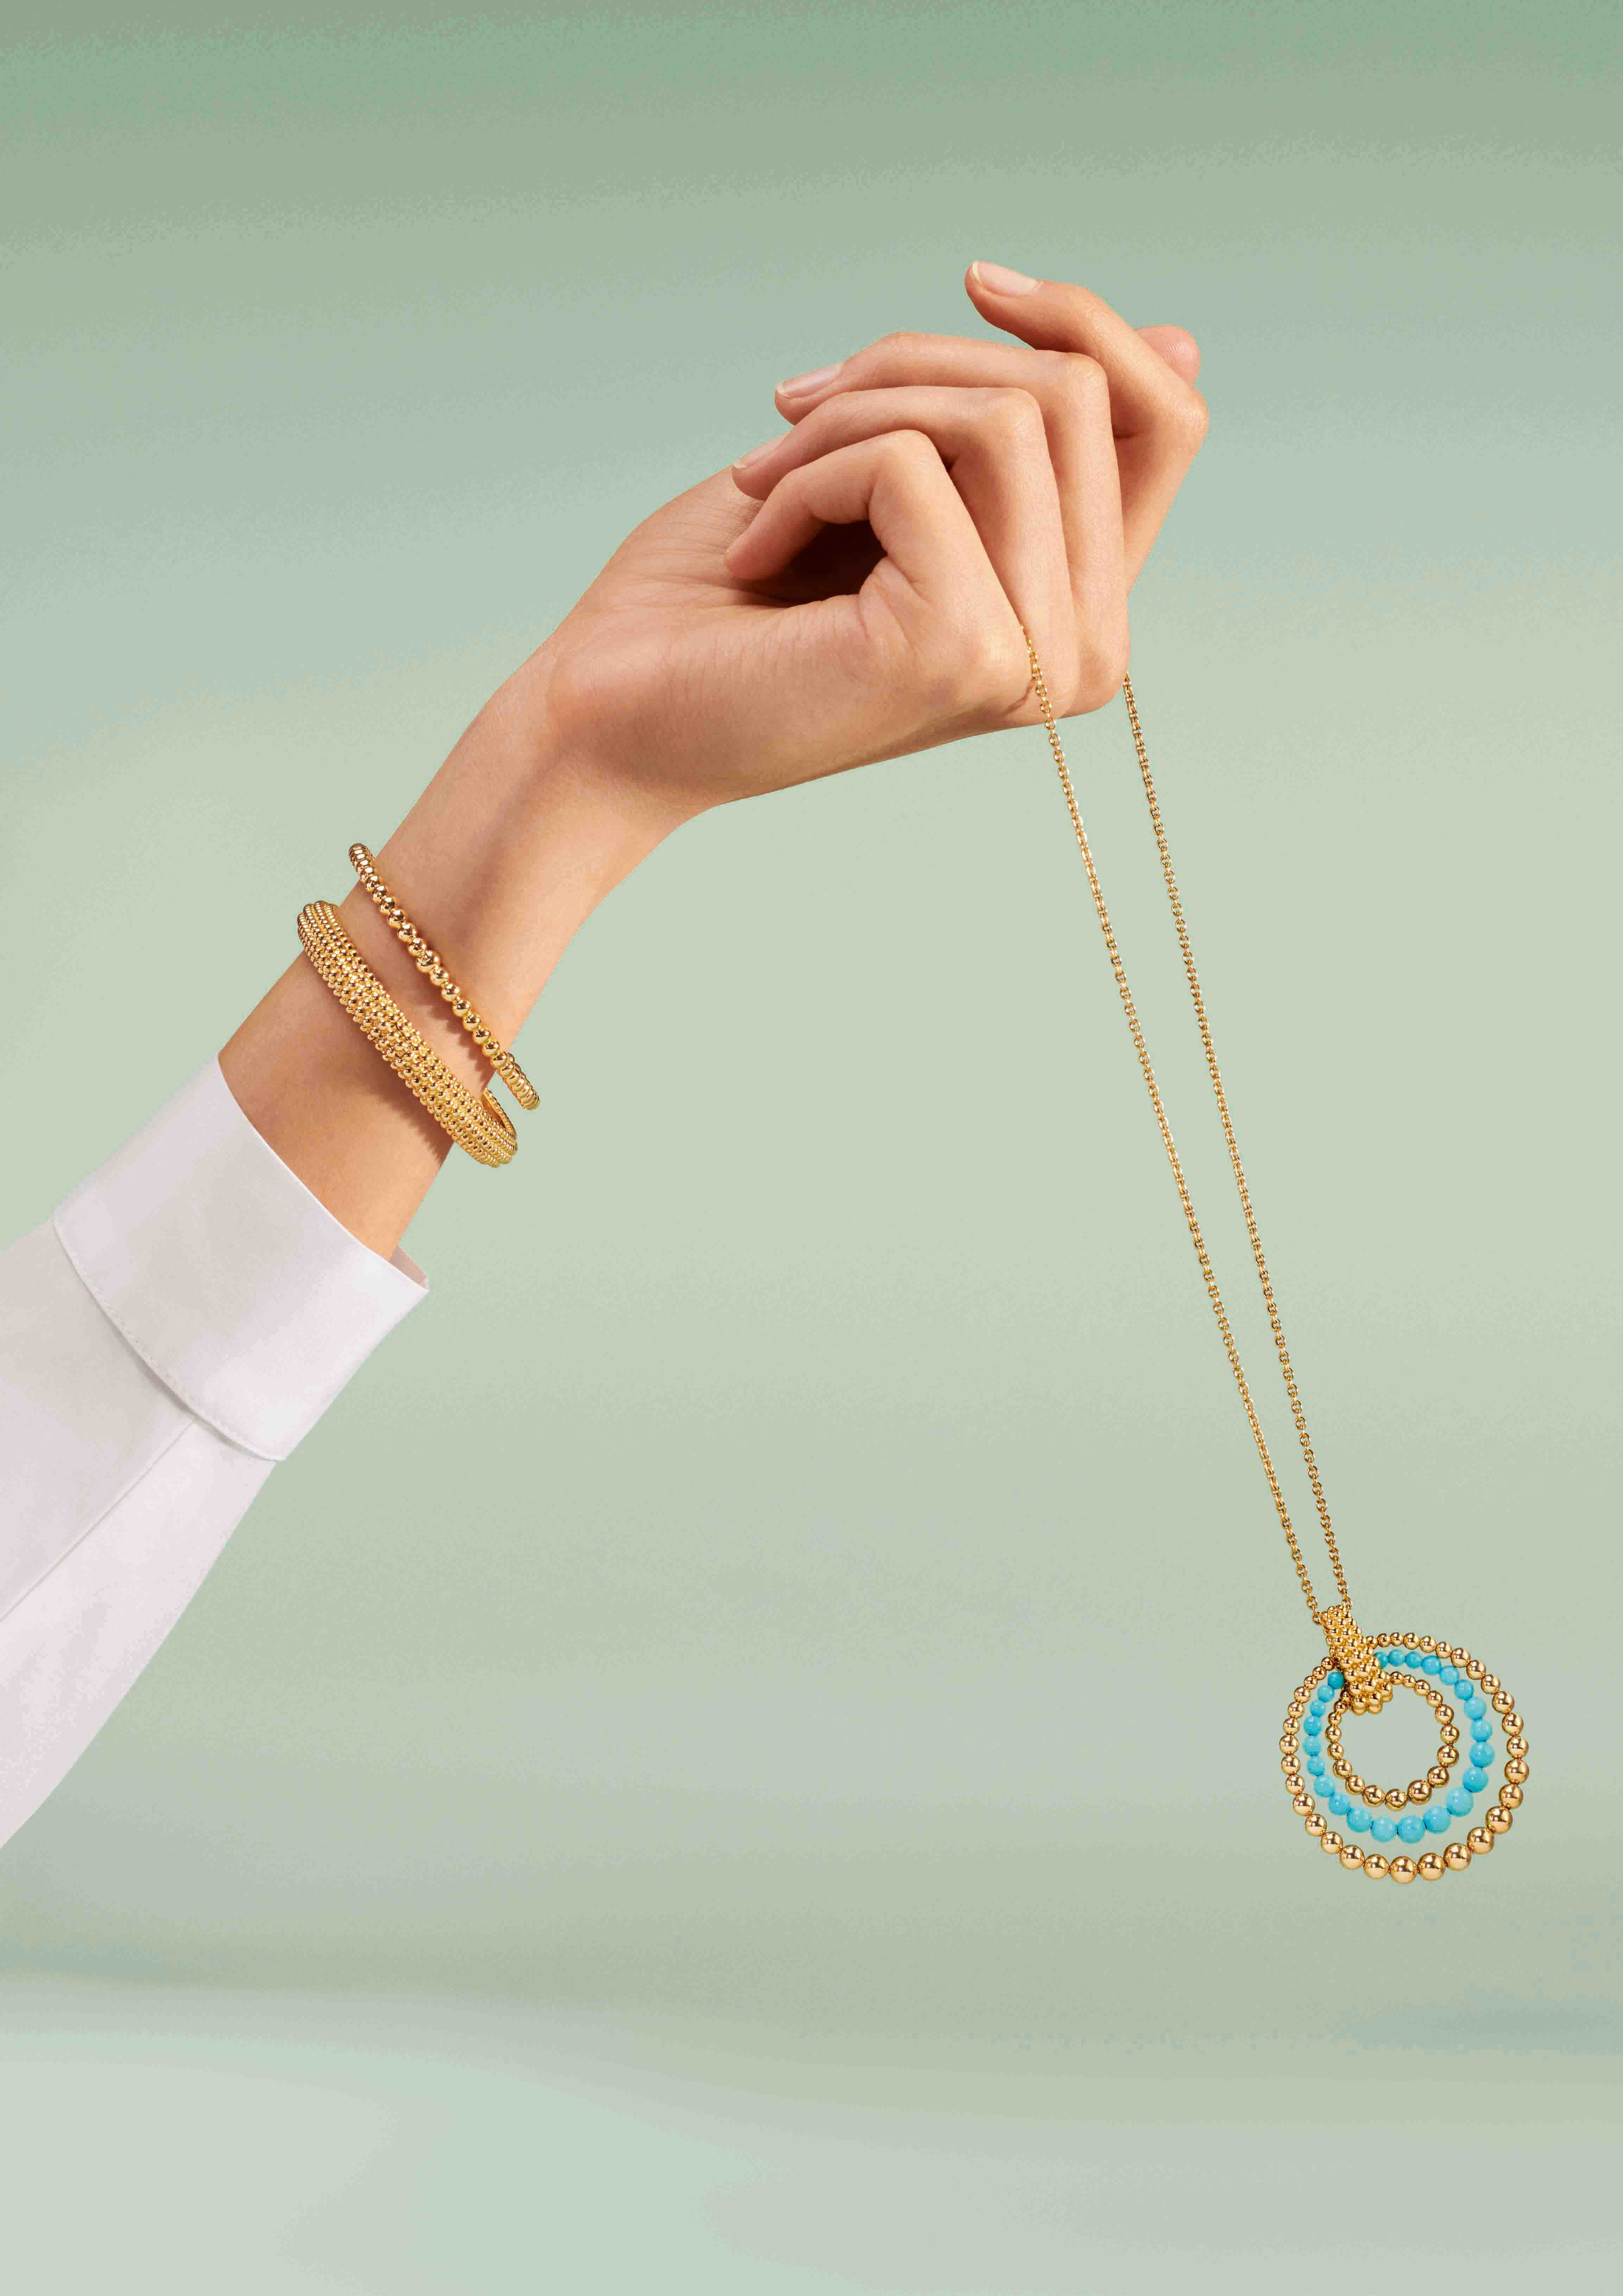 How Van Cleef & Arpels' multi-coloured Perlée collection rings the changes